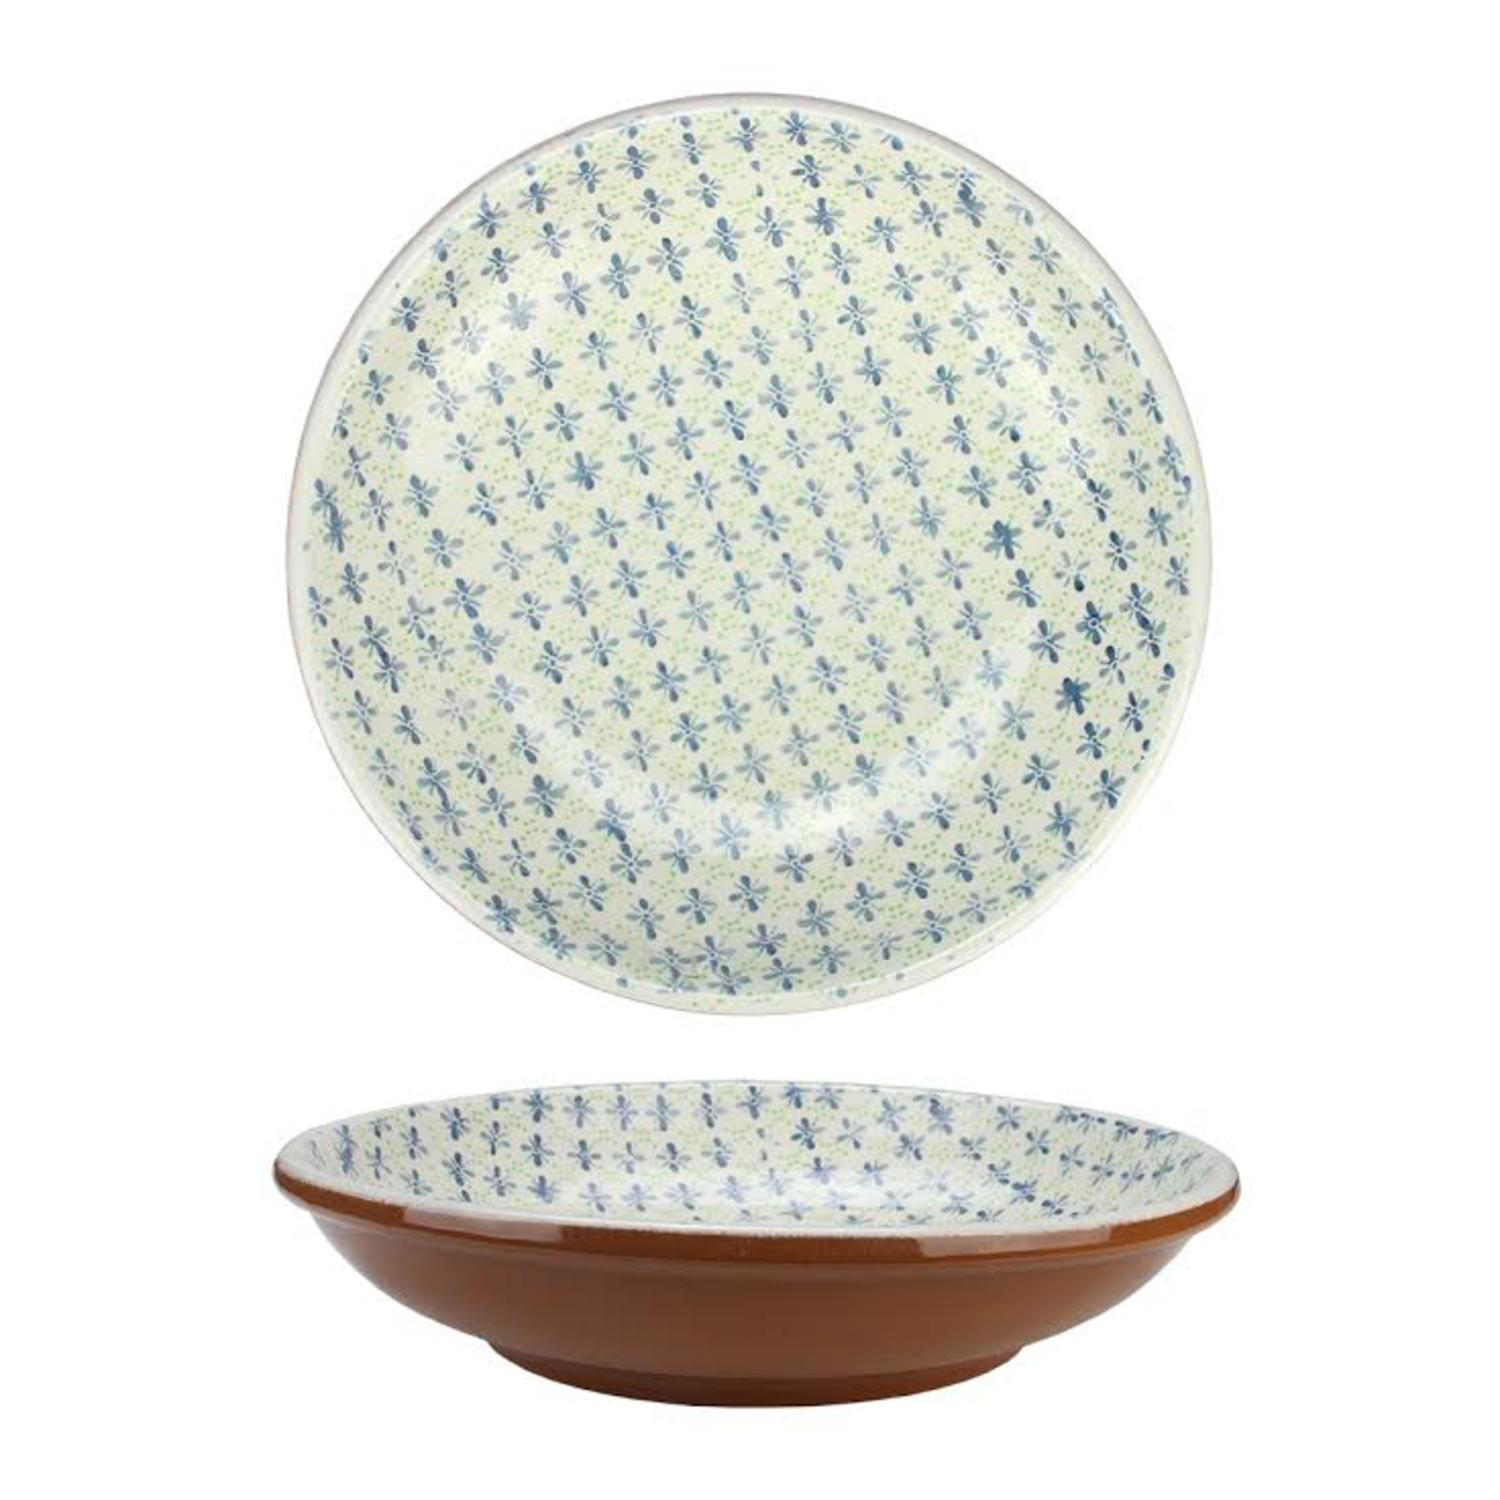 """12.25"""" French Countryside Decorative Green and Blue Flower Round Terracotta Bowl by Kaemingk"""